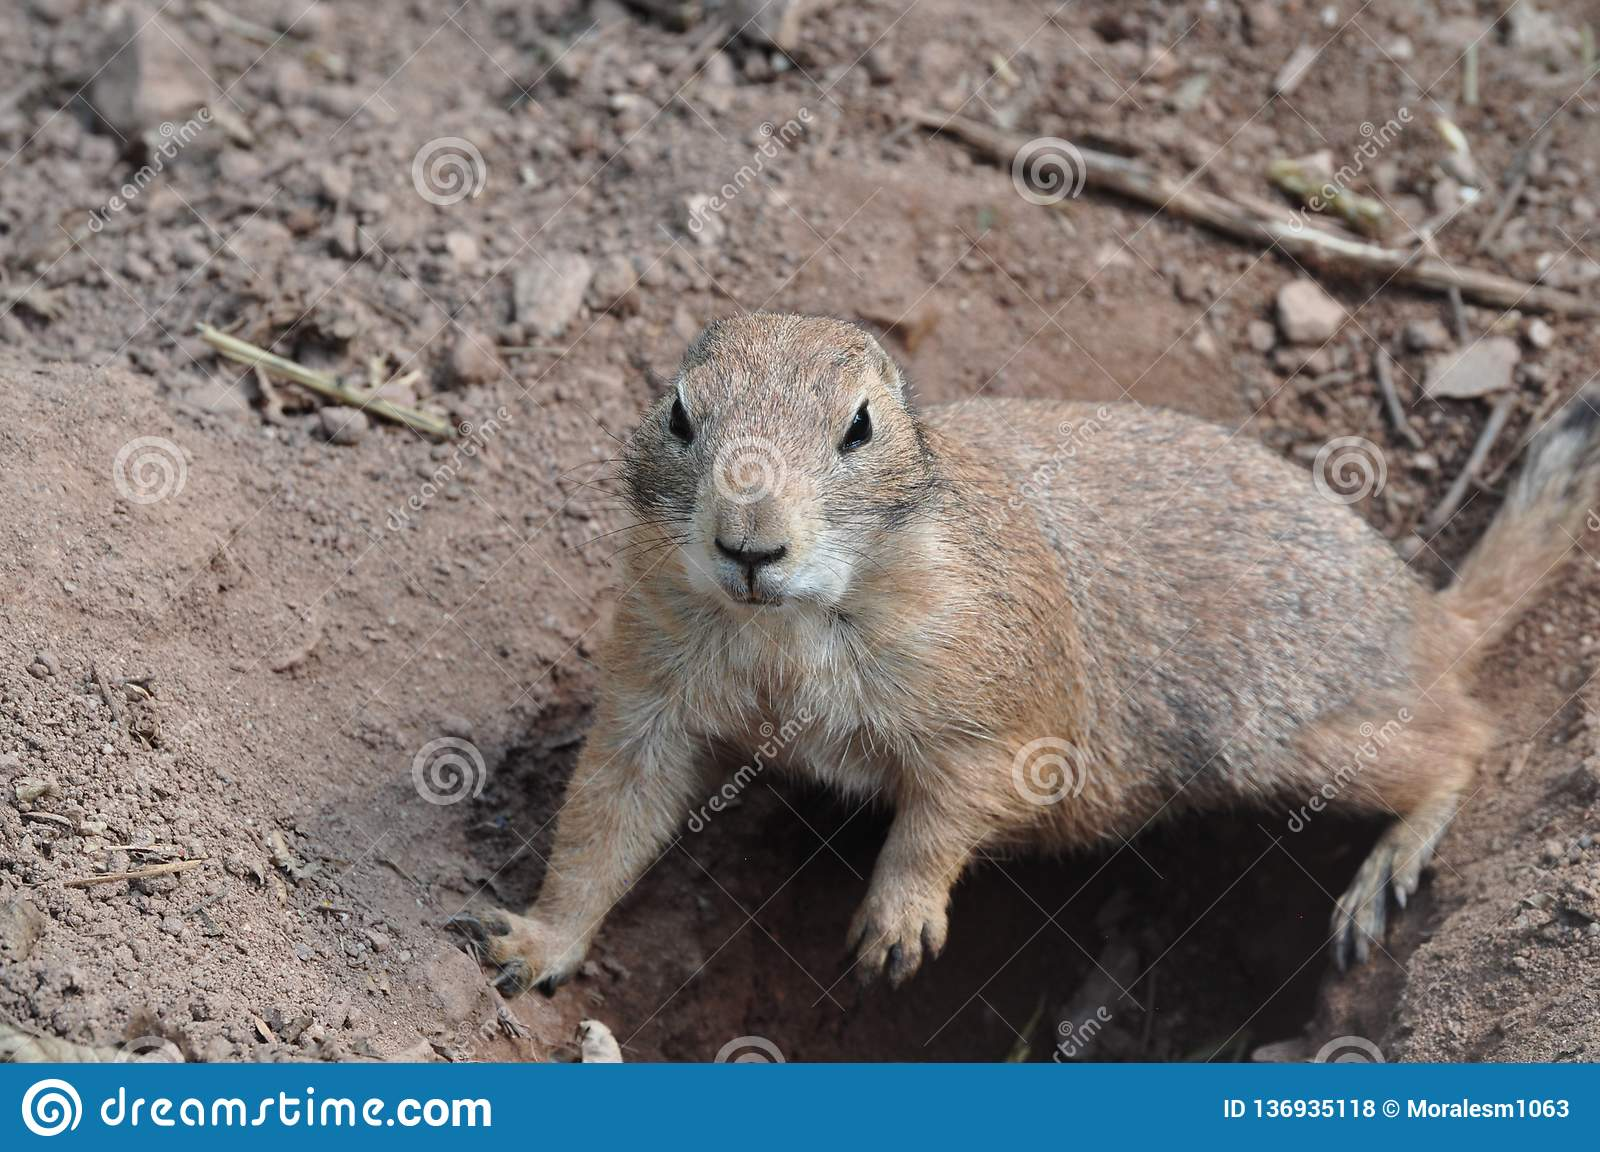 Ground squirrel digging a hole, Animal wildlife